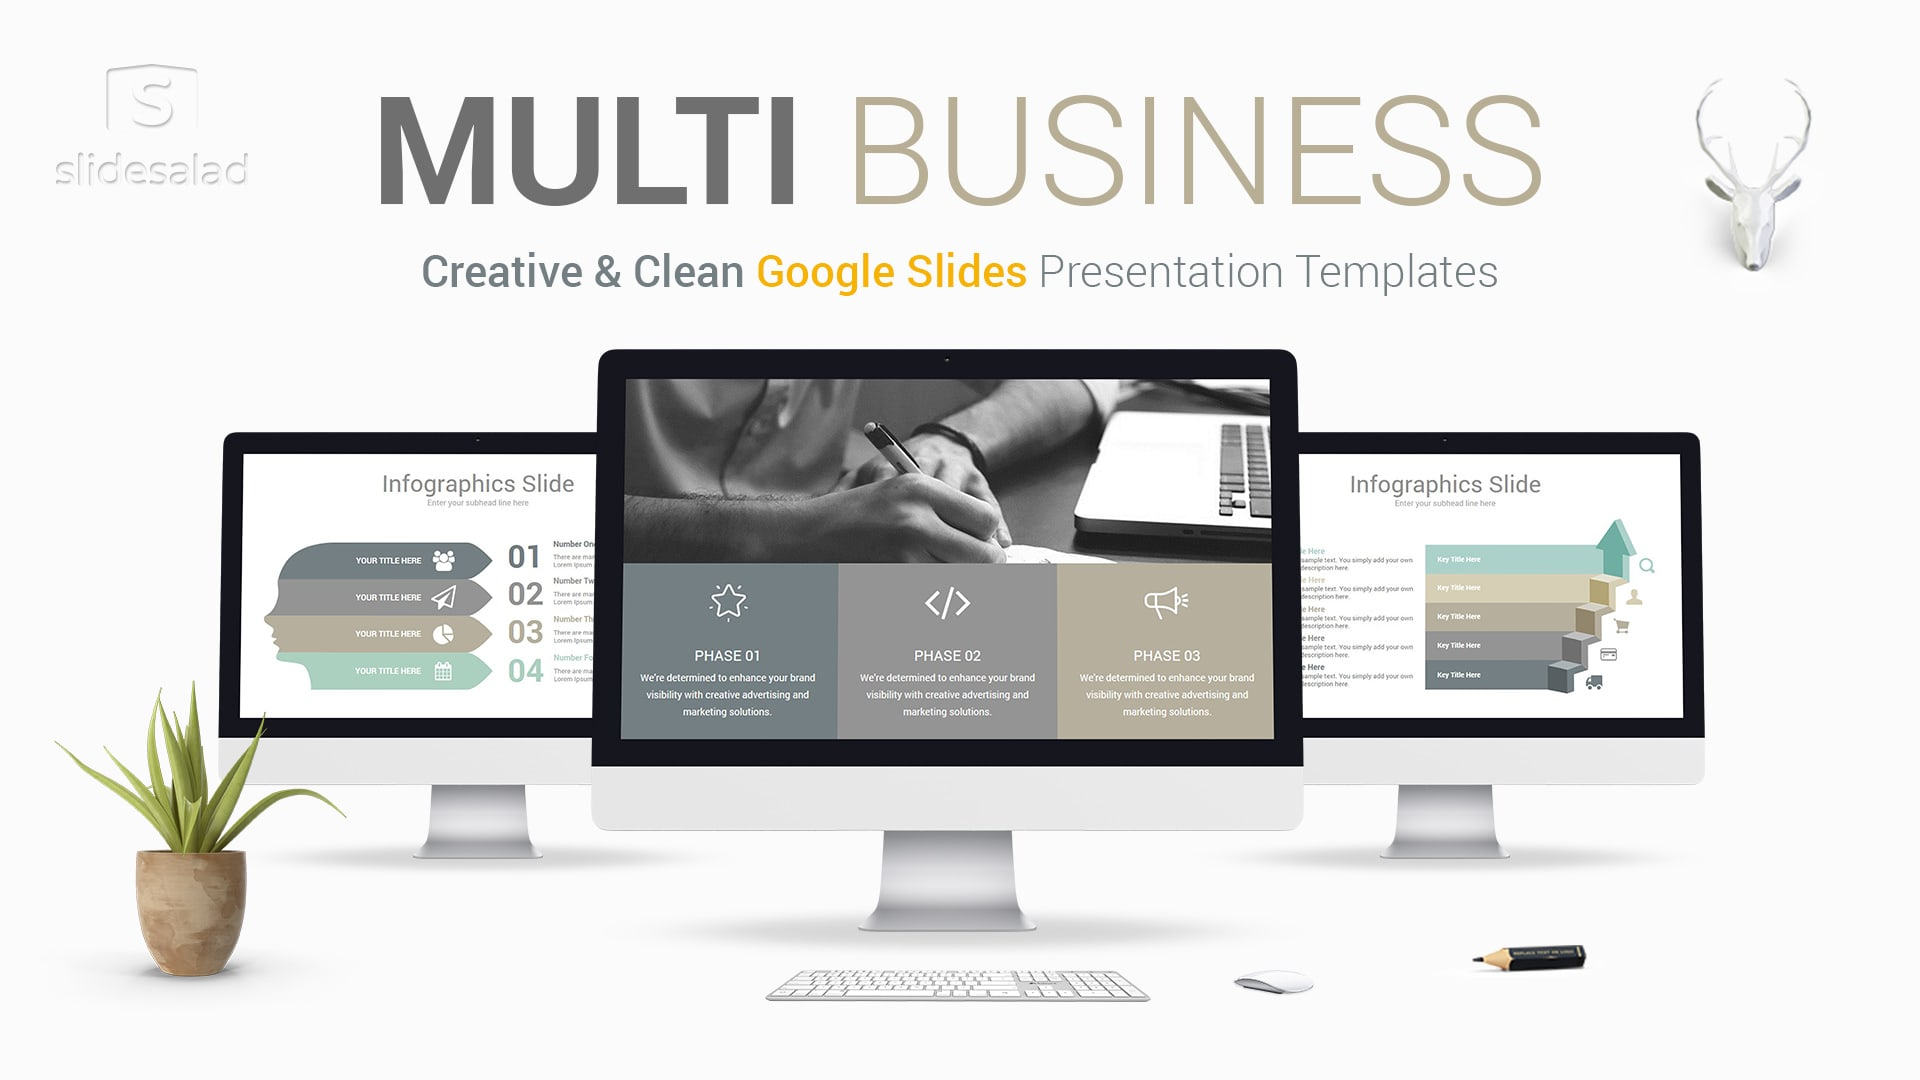 Multi Business PowerPoint Presentation Templates – Business and Pitch Deck Template